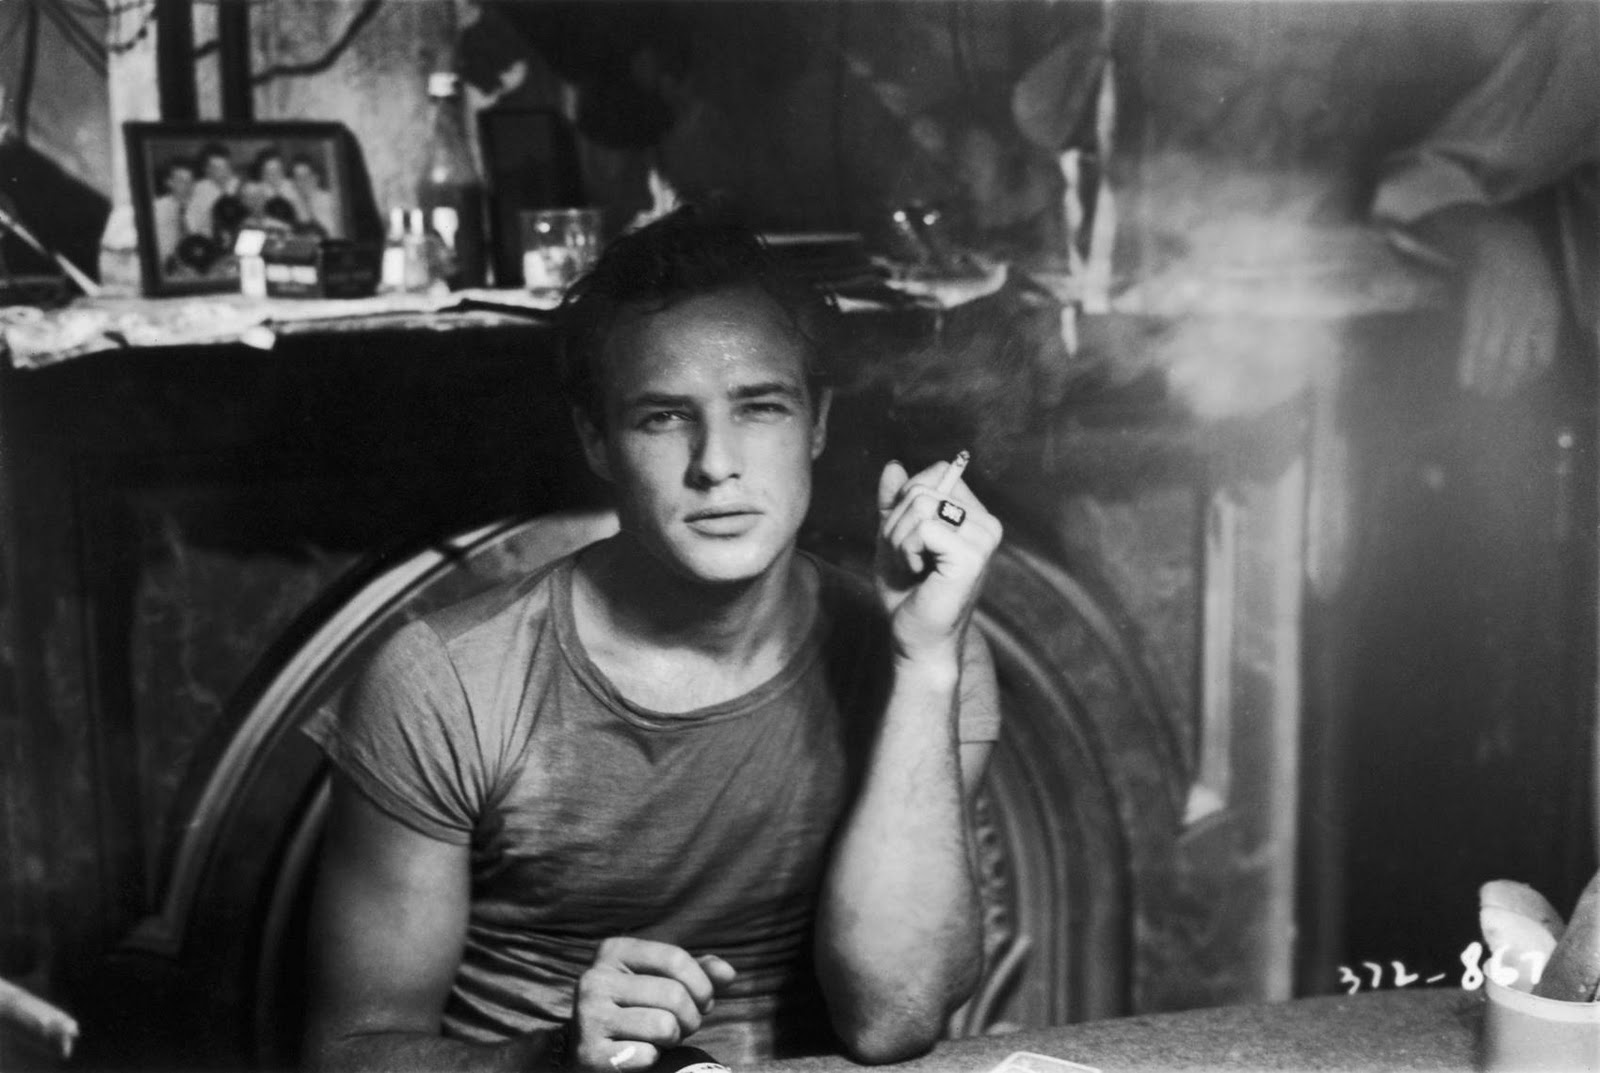 Marlon Brando in the 1951 classic A Streetcar Named Desire, screening this month at Barclay Manor.